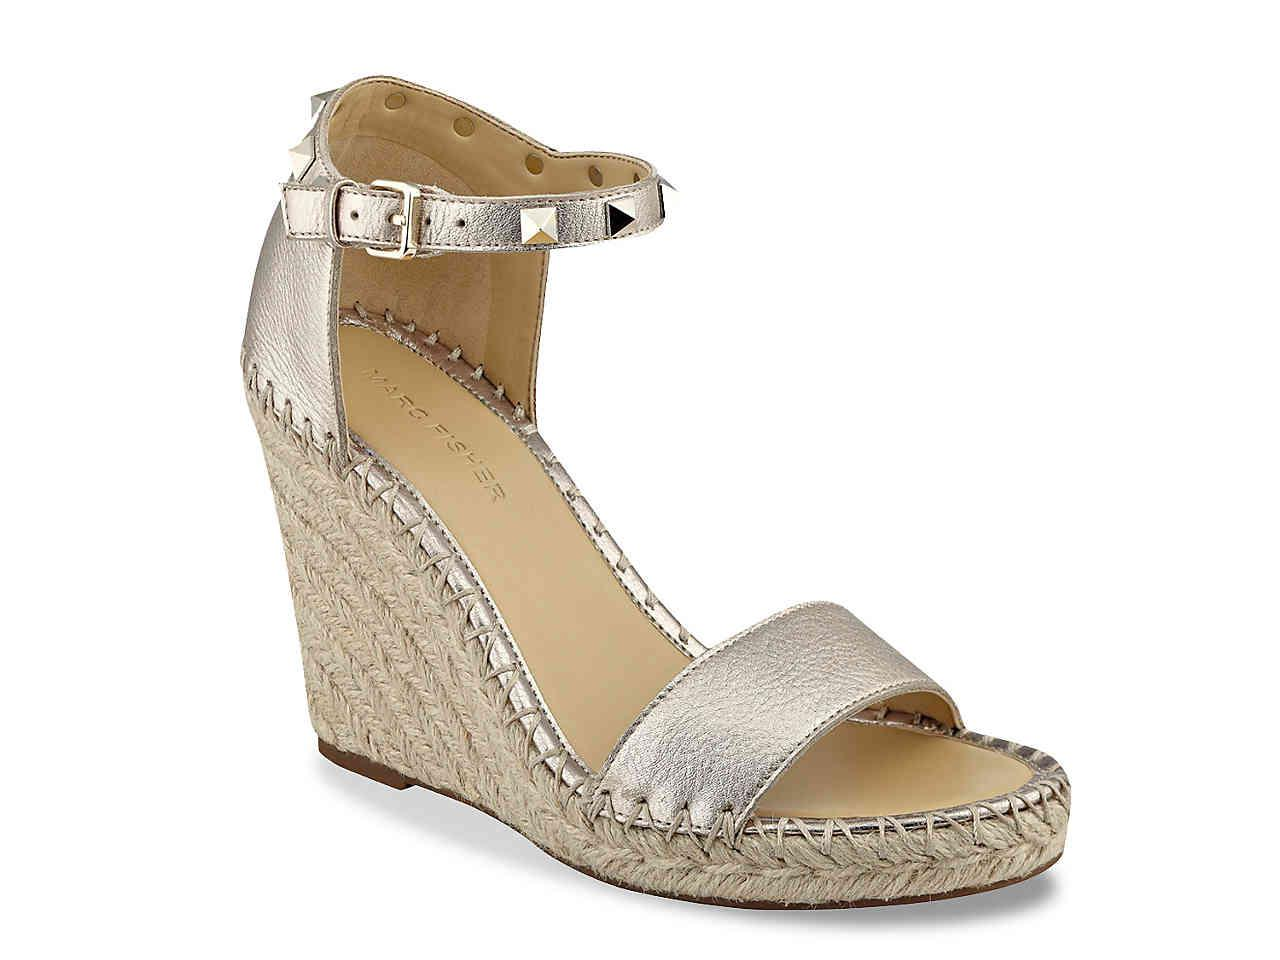 c48391ed404 Lyst - Marc Fisher Kicker Wedge Sandal in Metallic - Save 36%